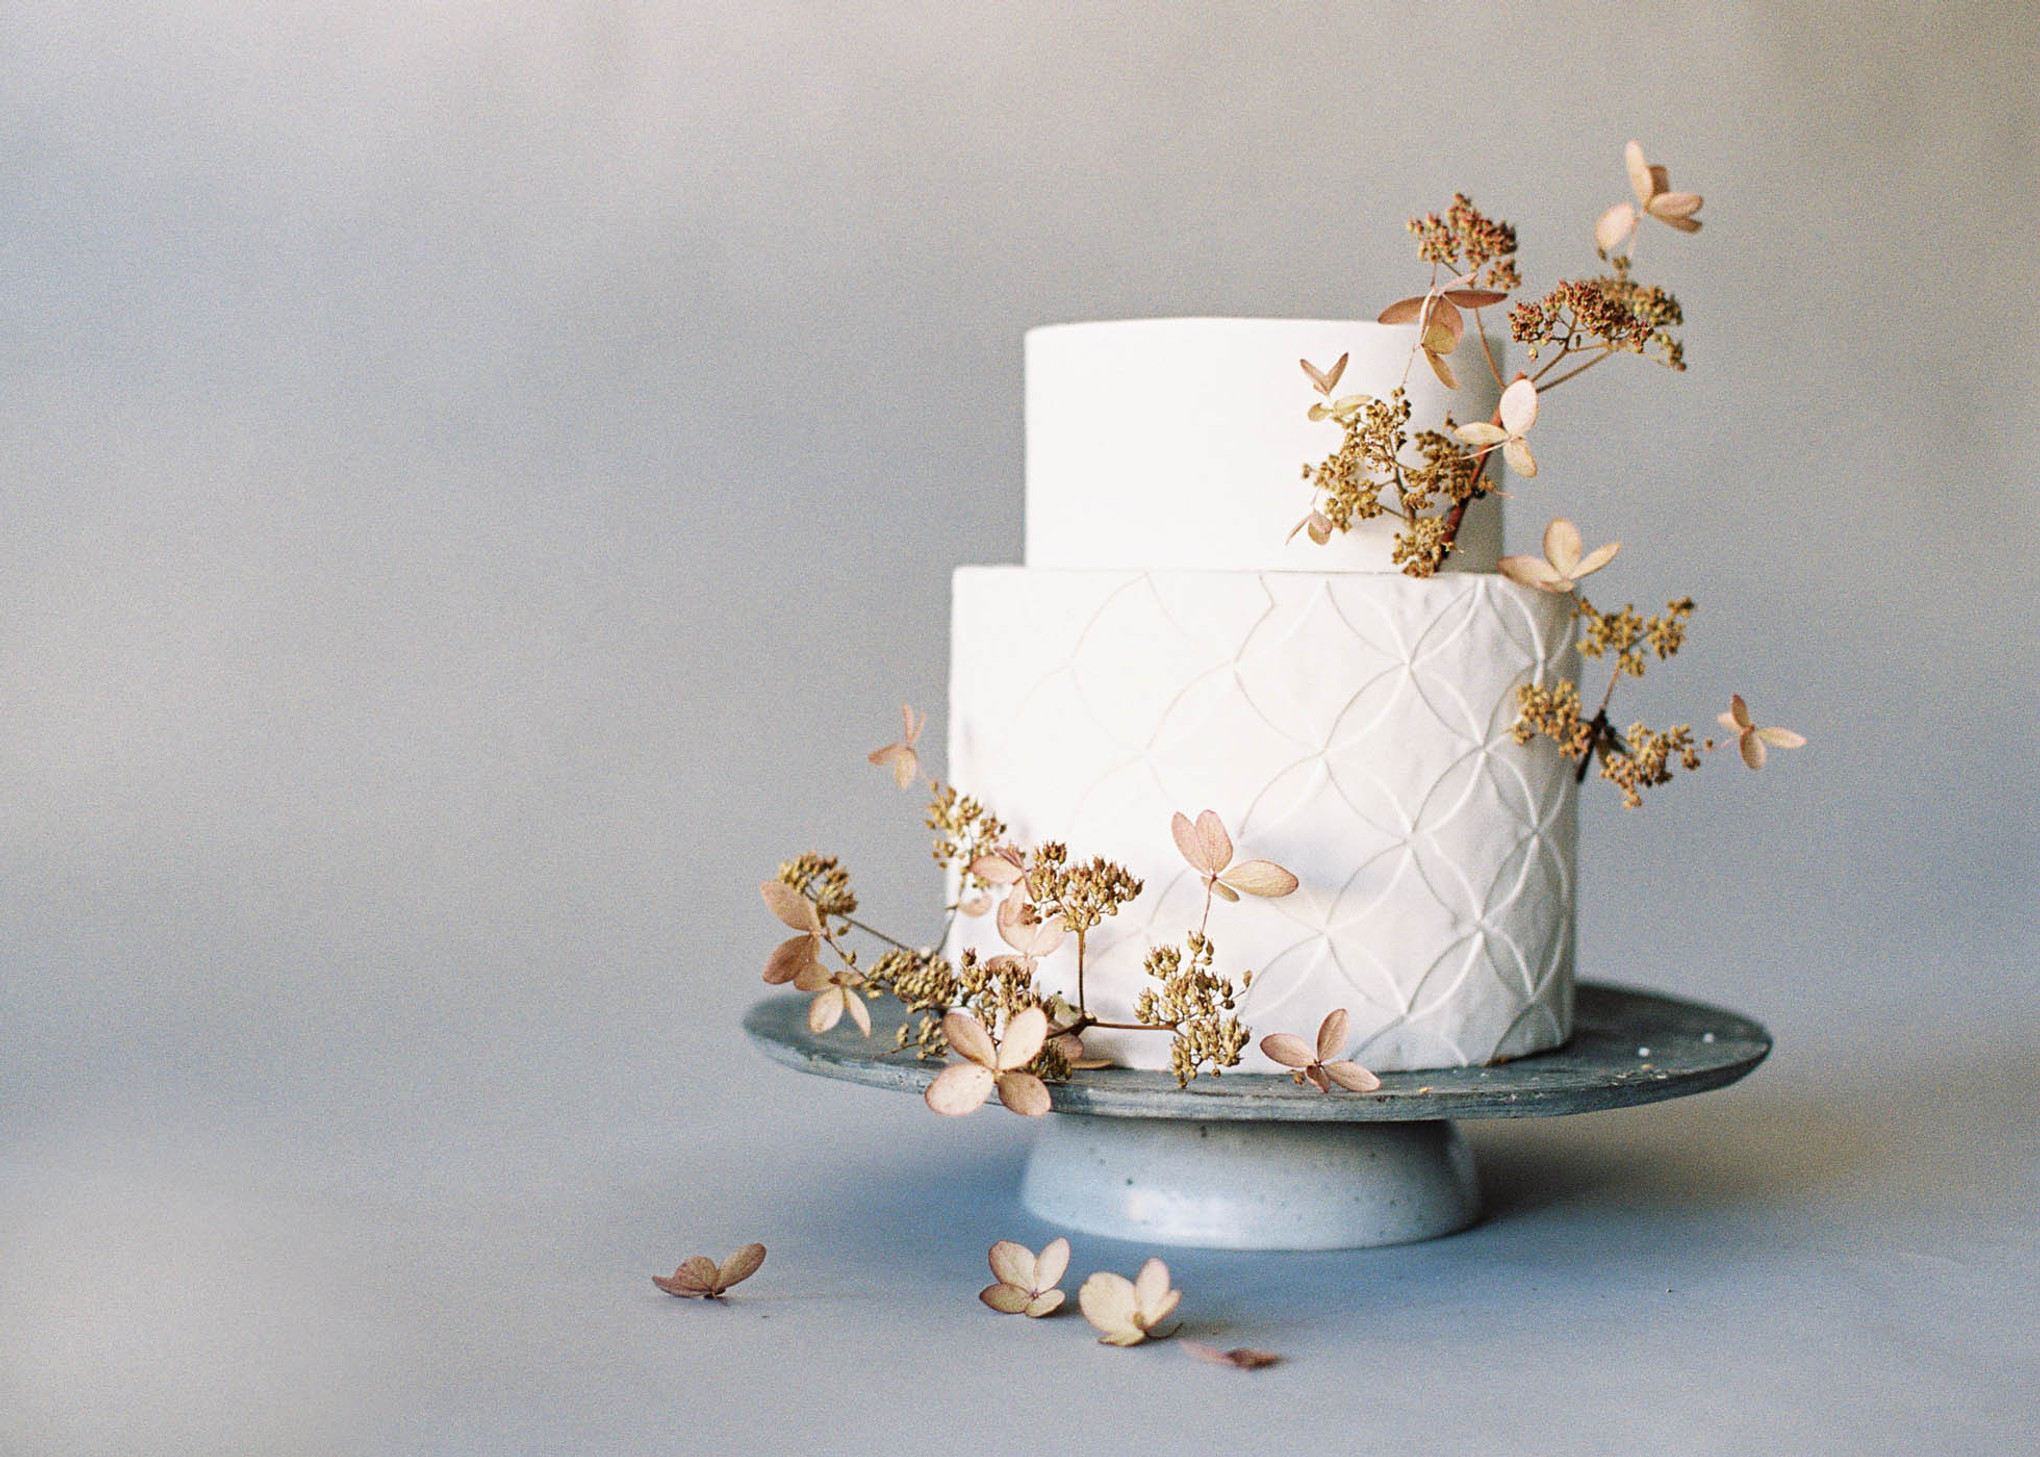 10 Cake Decoration Ideas for a Nature-Inspired Wedding